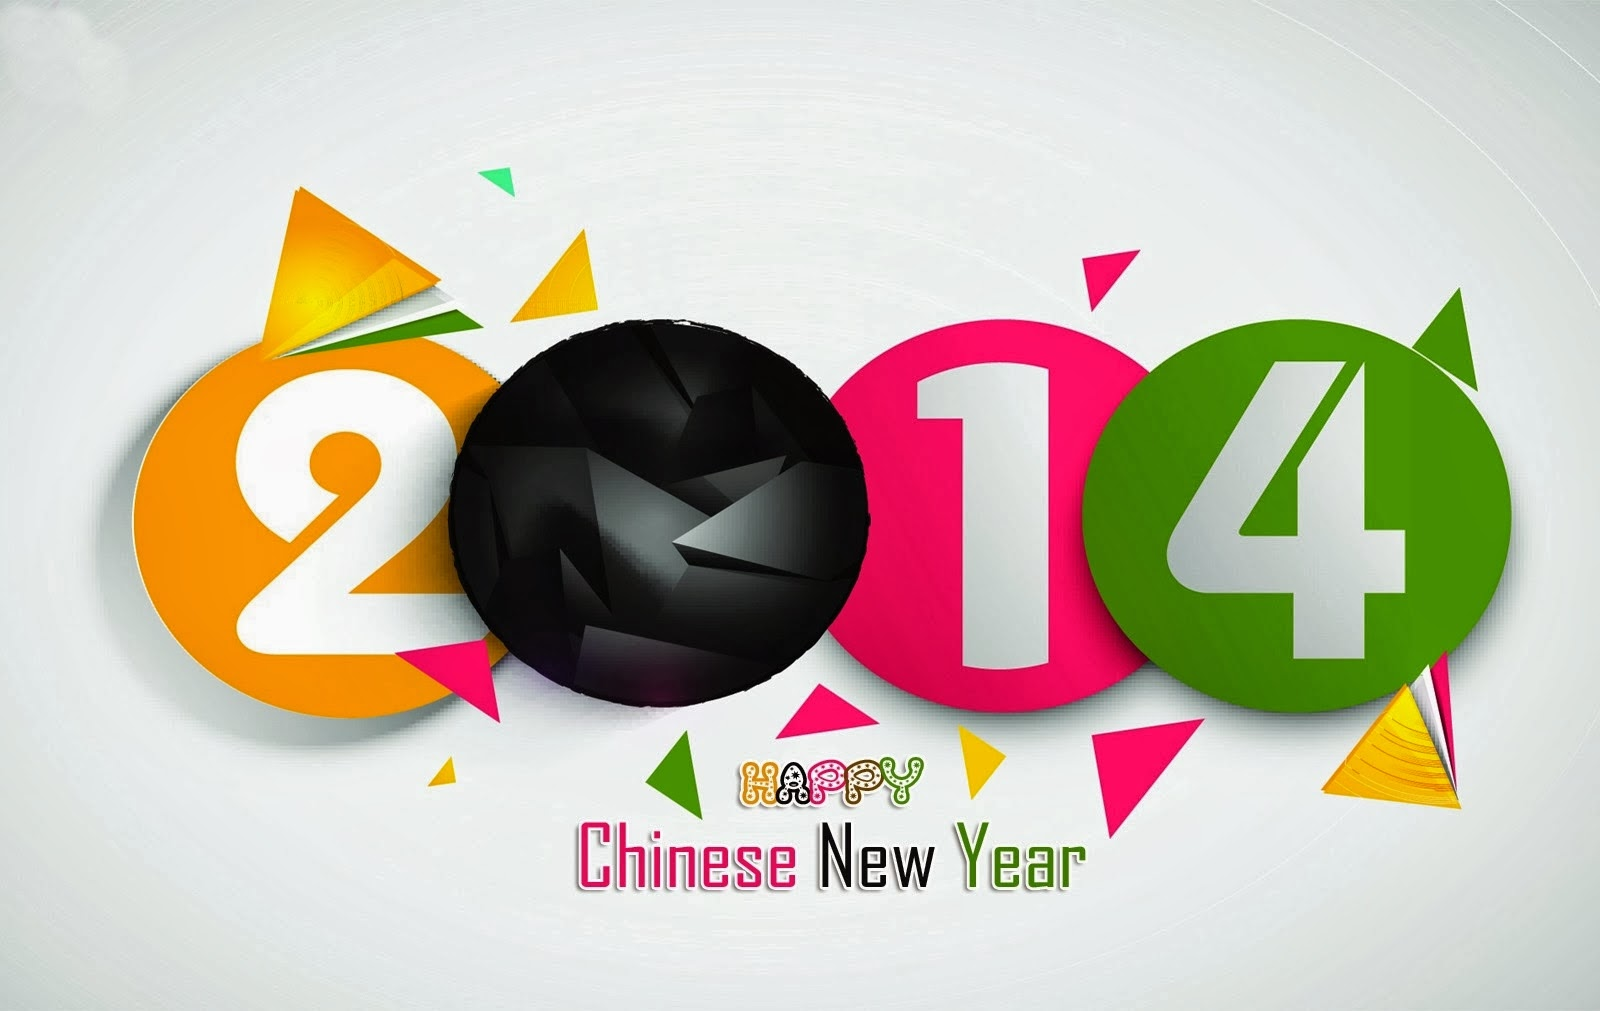 Happy New Year 2014 Wishes Wallpaper With Lunar New Year Greeting